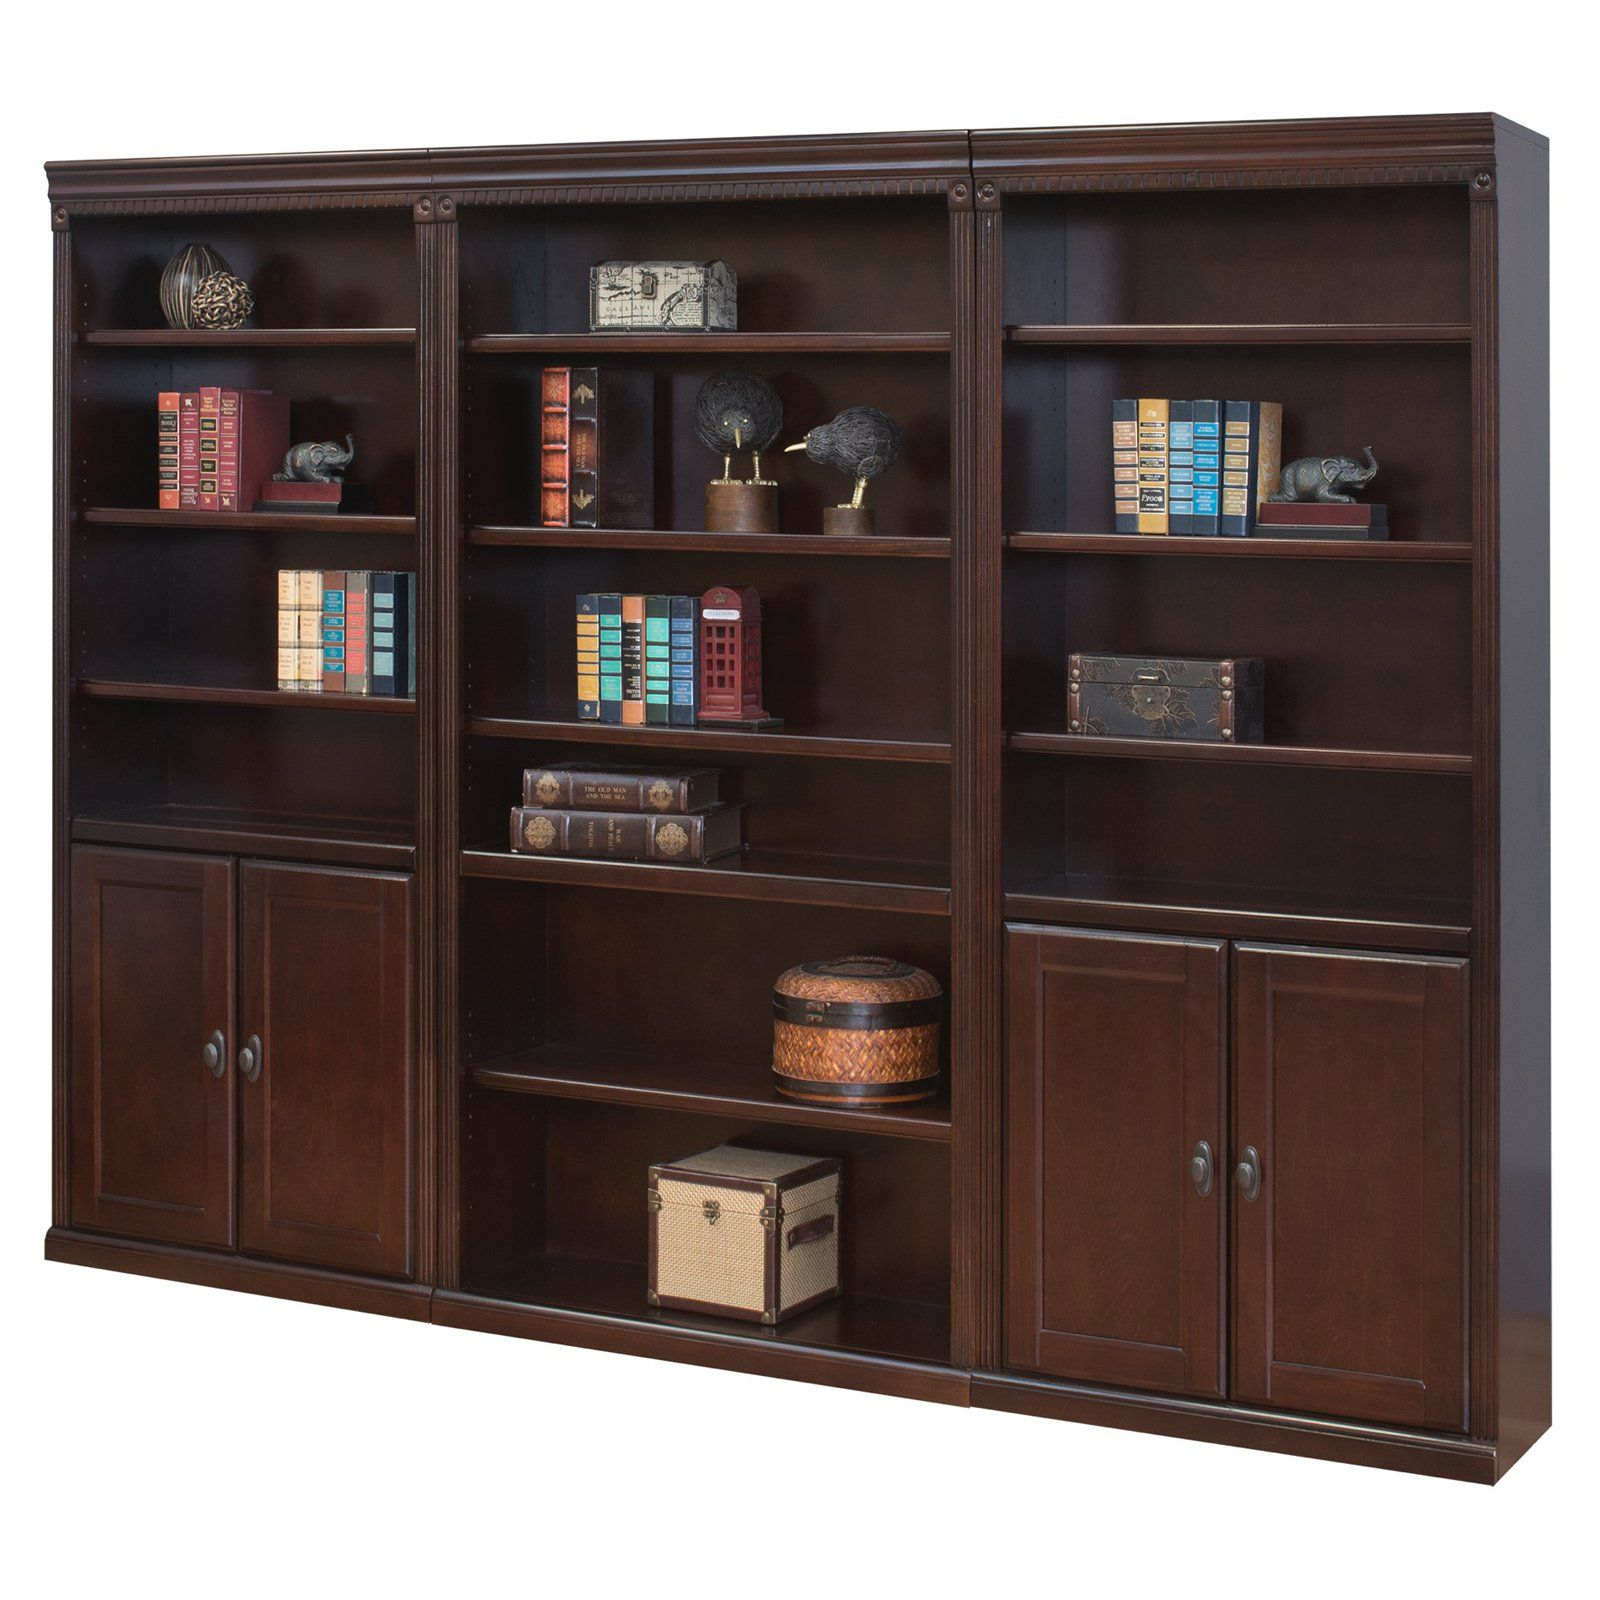 furniture ethnicraft presentation bookcase products nordic bookcases oak